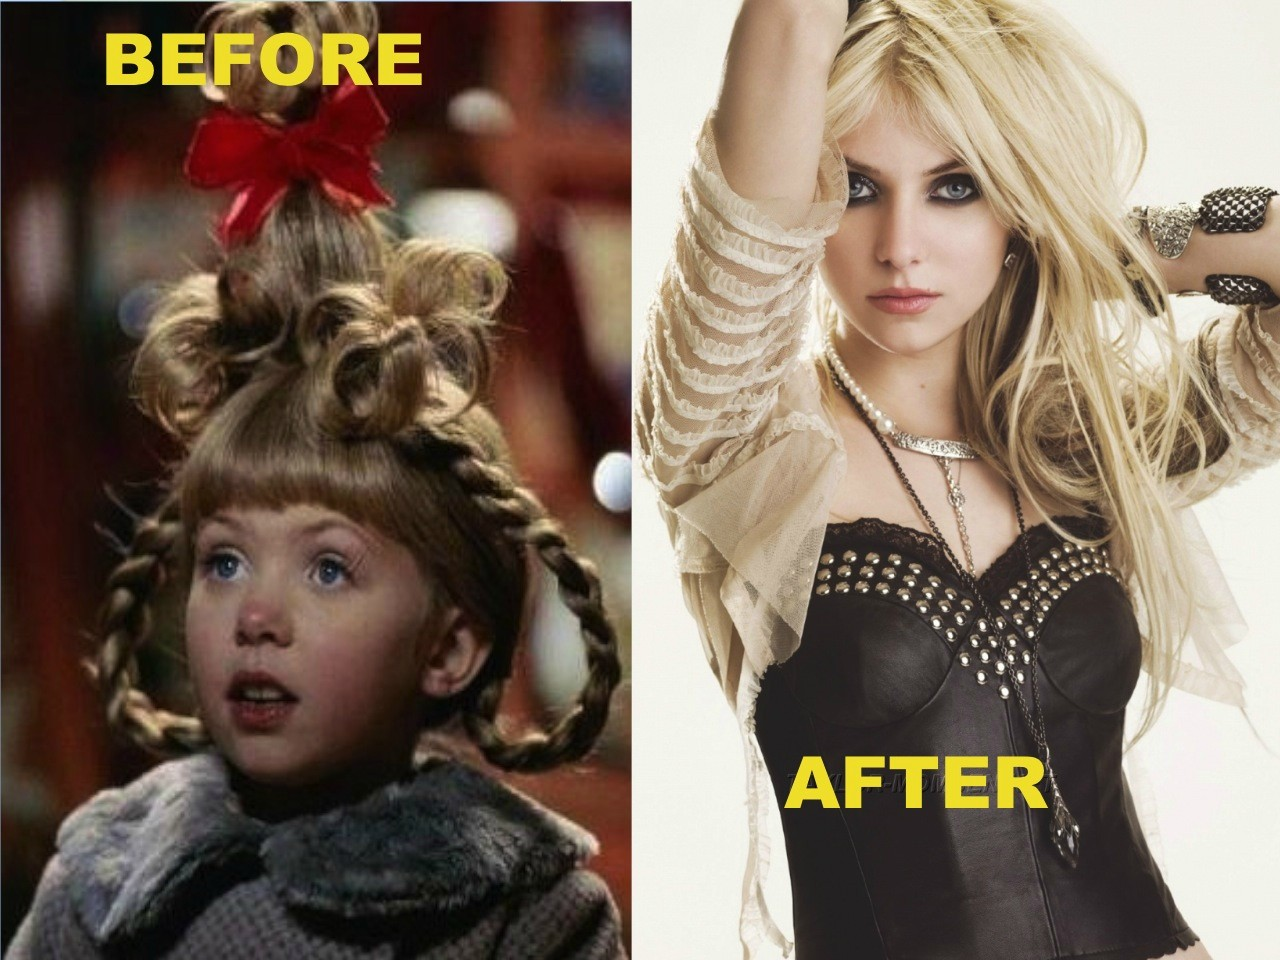 Taylor-momsen-before-and-after